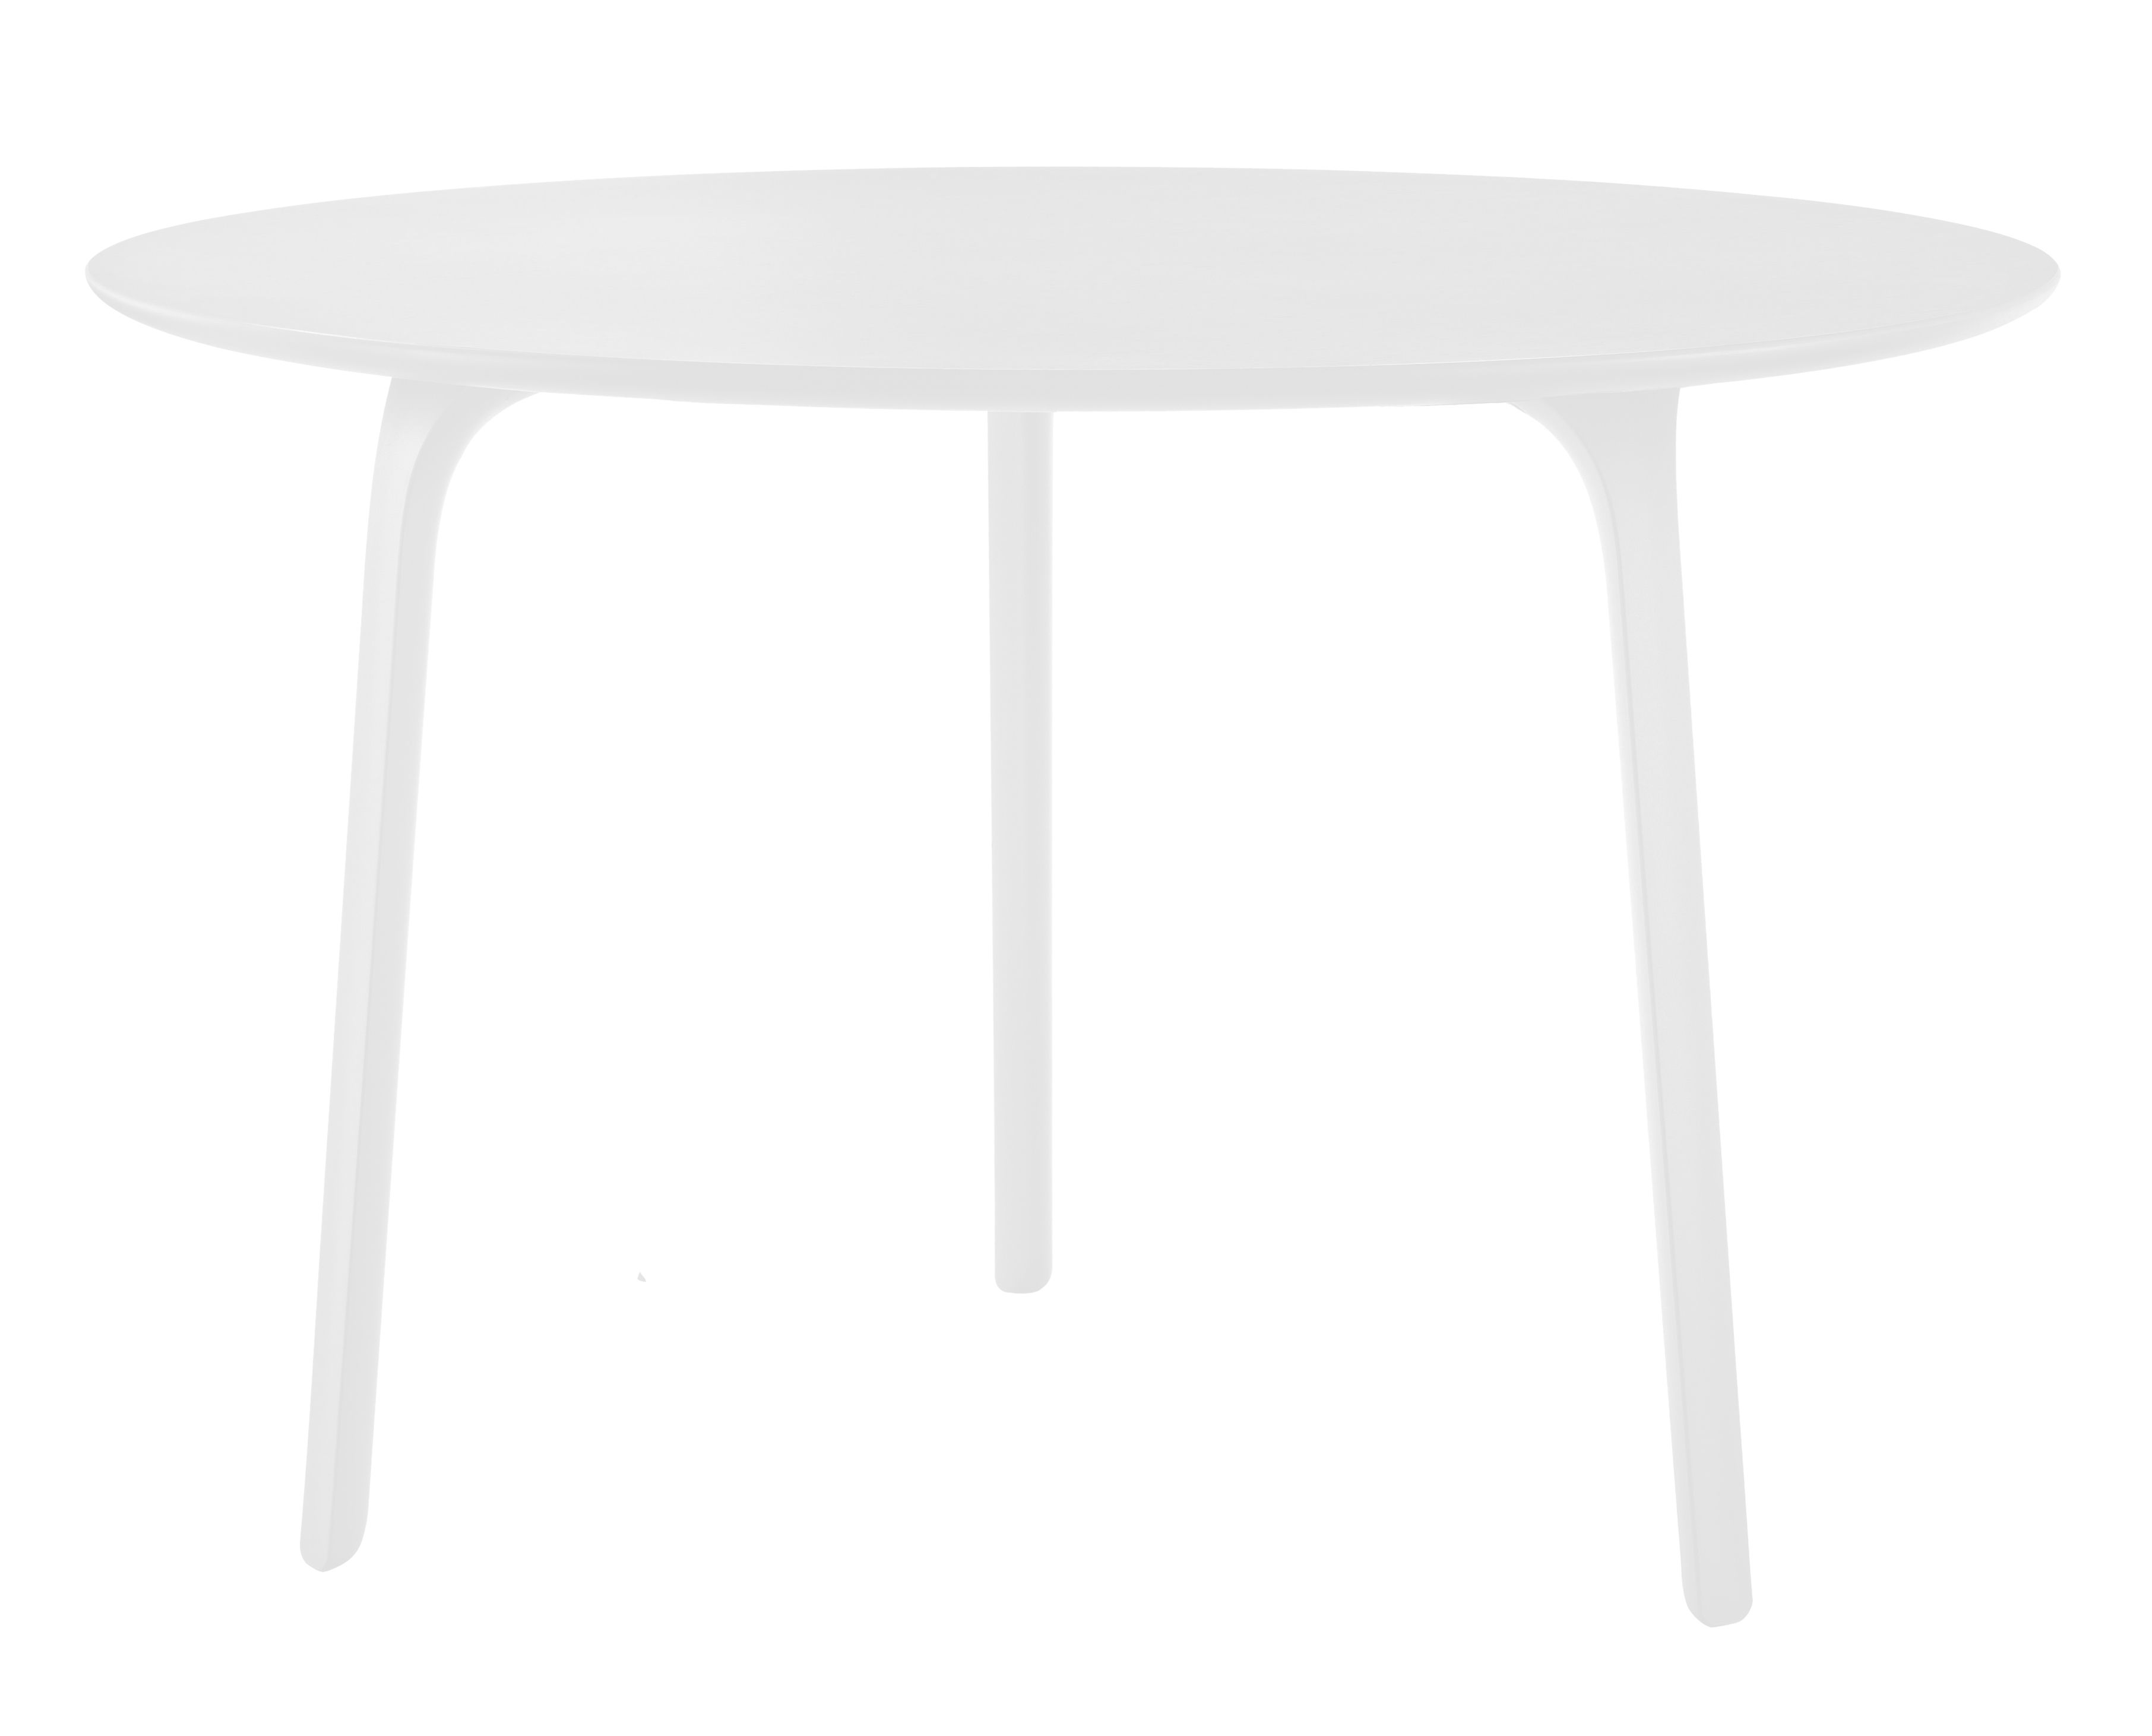 Furniture - Dining Tables - First Round table - Round Ø 120 - Indoor use by Magis - White feet - white top - Polyamide